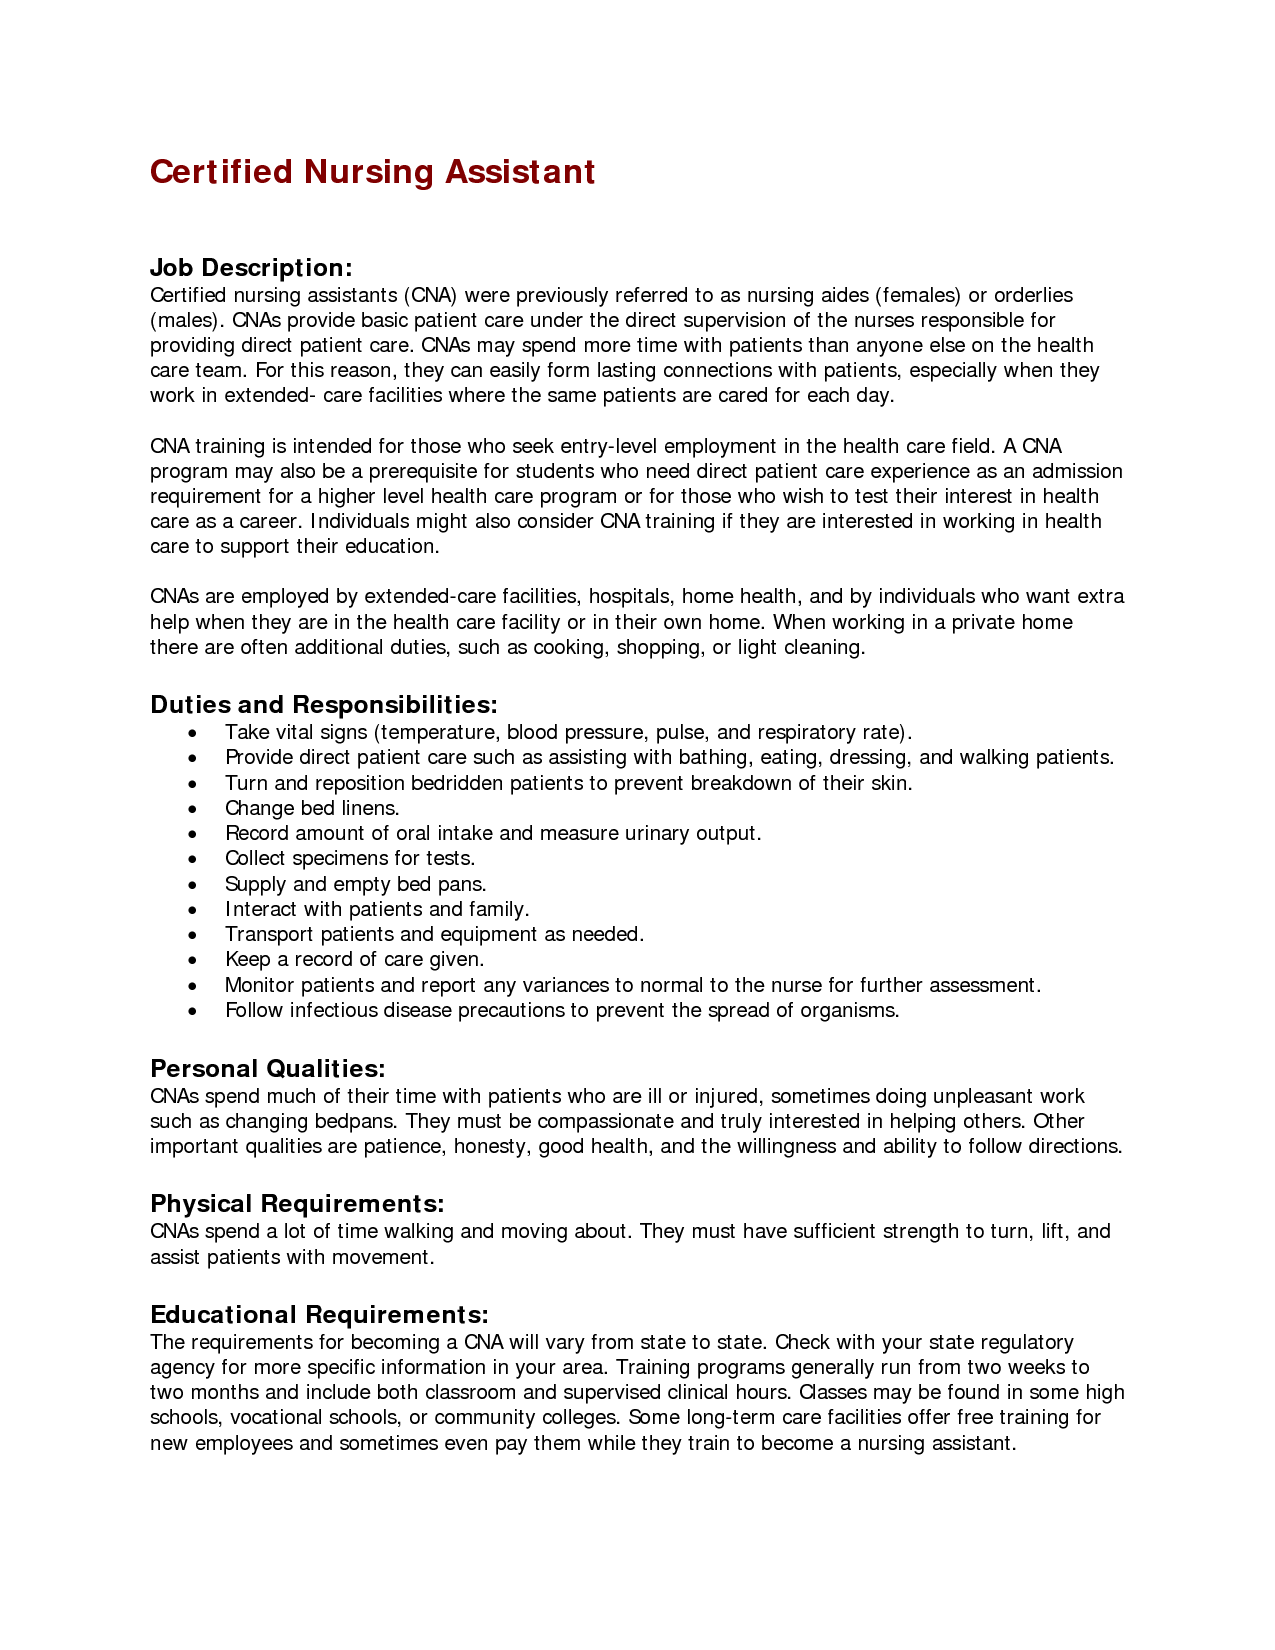 nursing assistant resume job description CNA Duties and Responsibilities